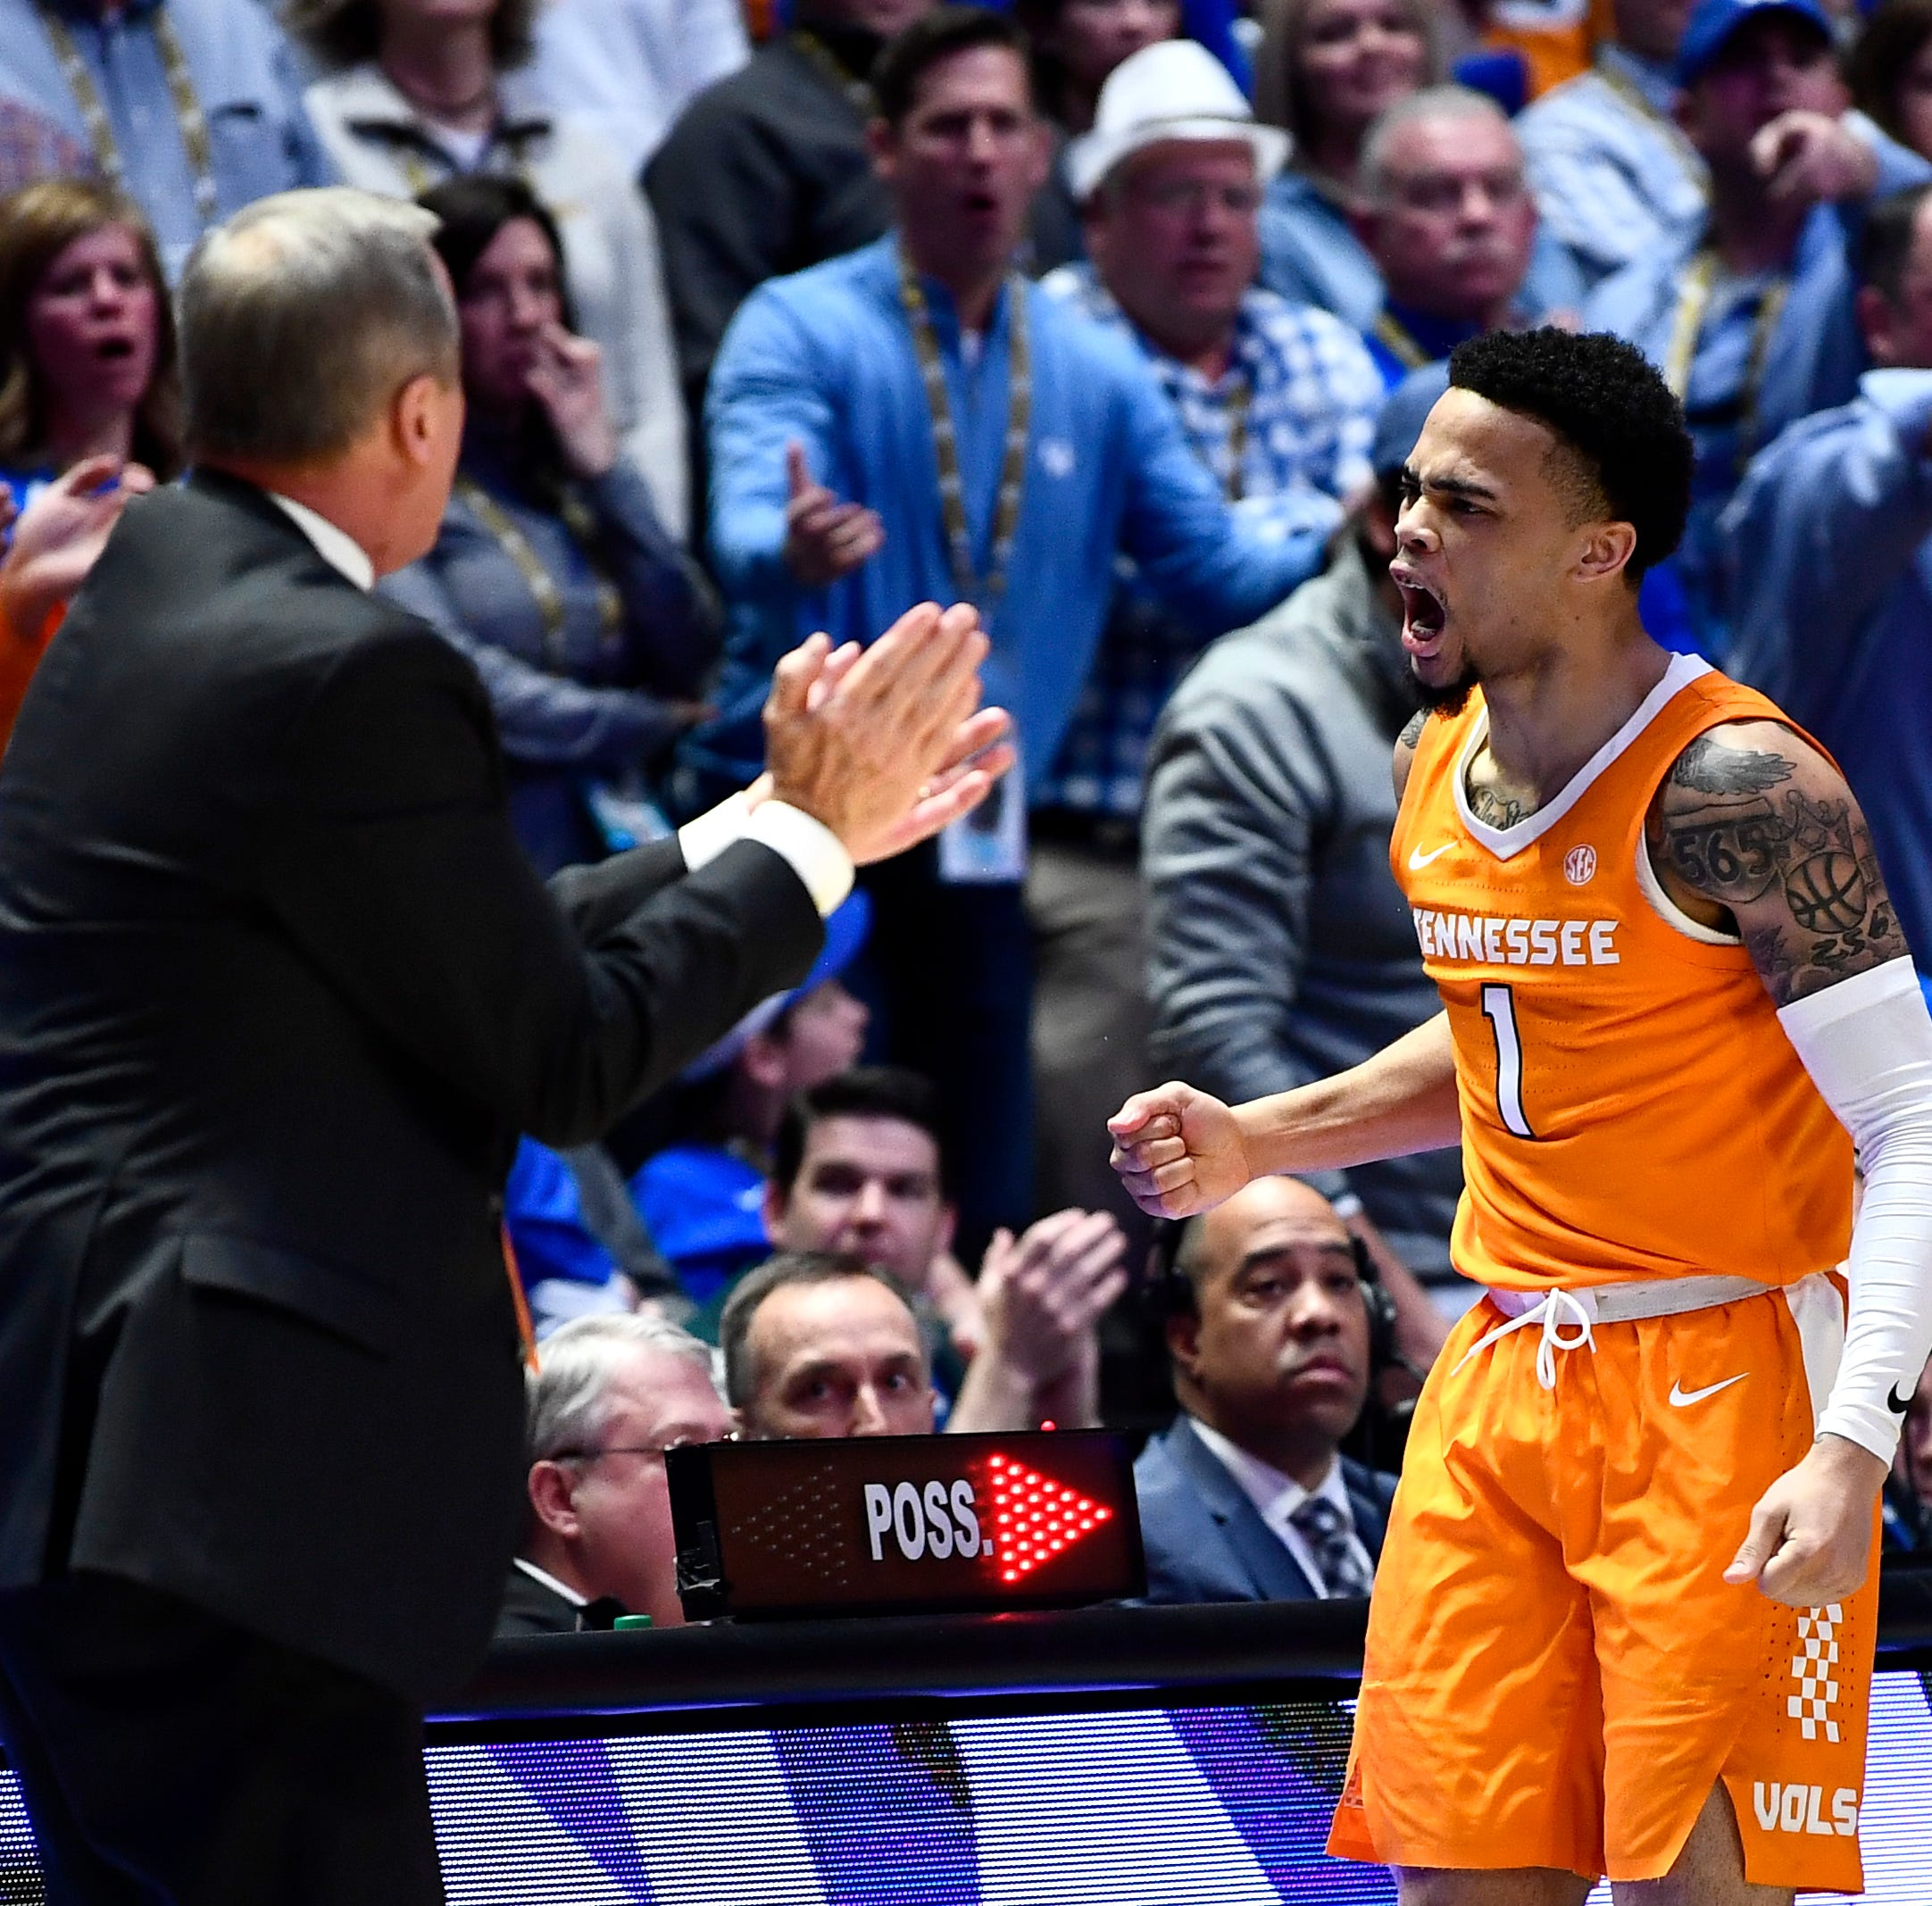 Tennessee basketball looks like a champion with SEC semifinal comeback win vs Kentucky